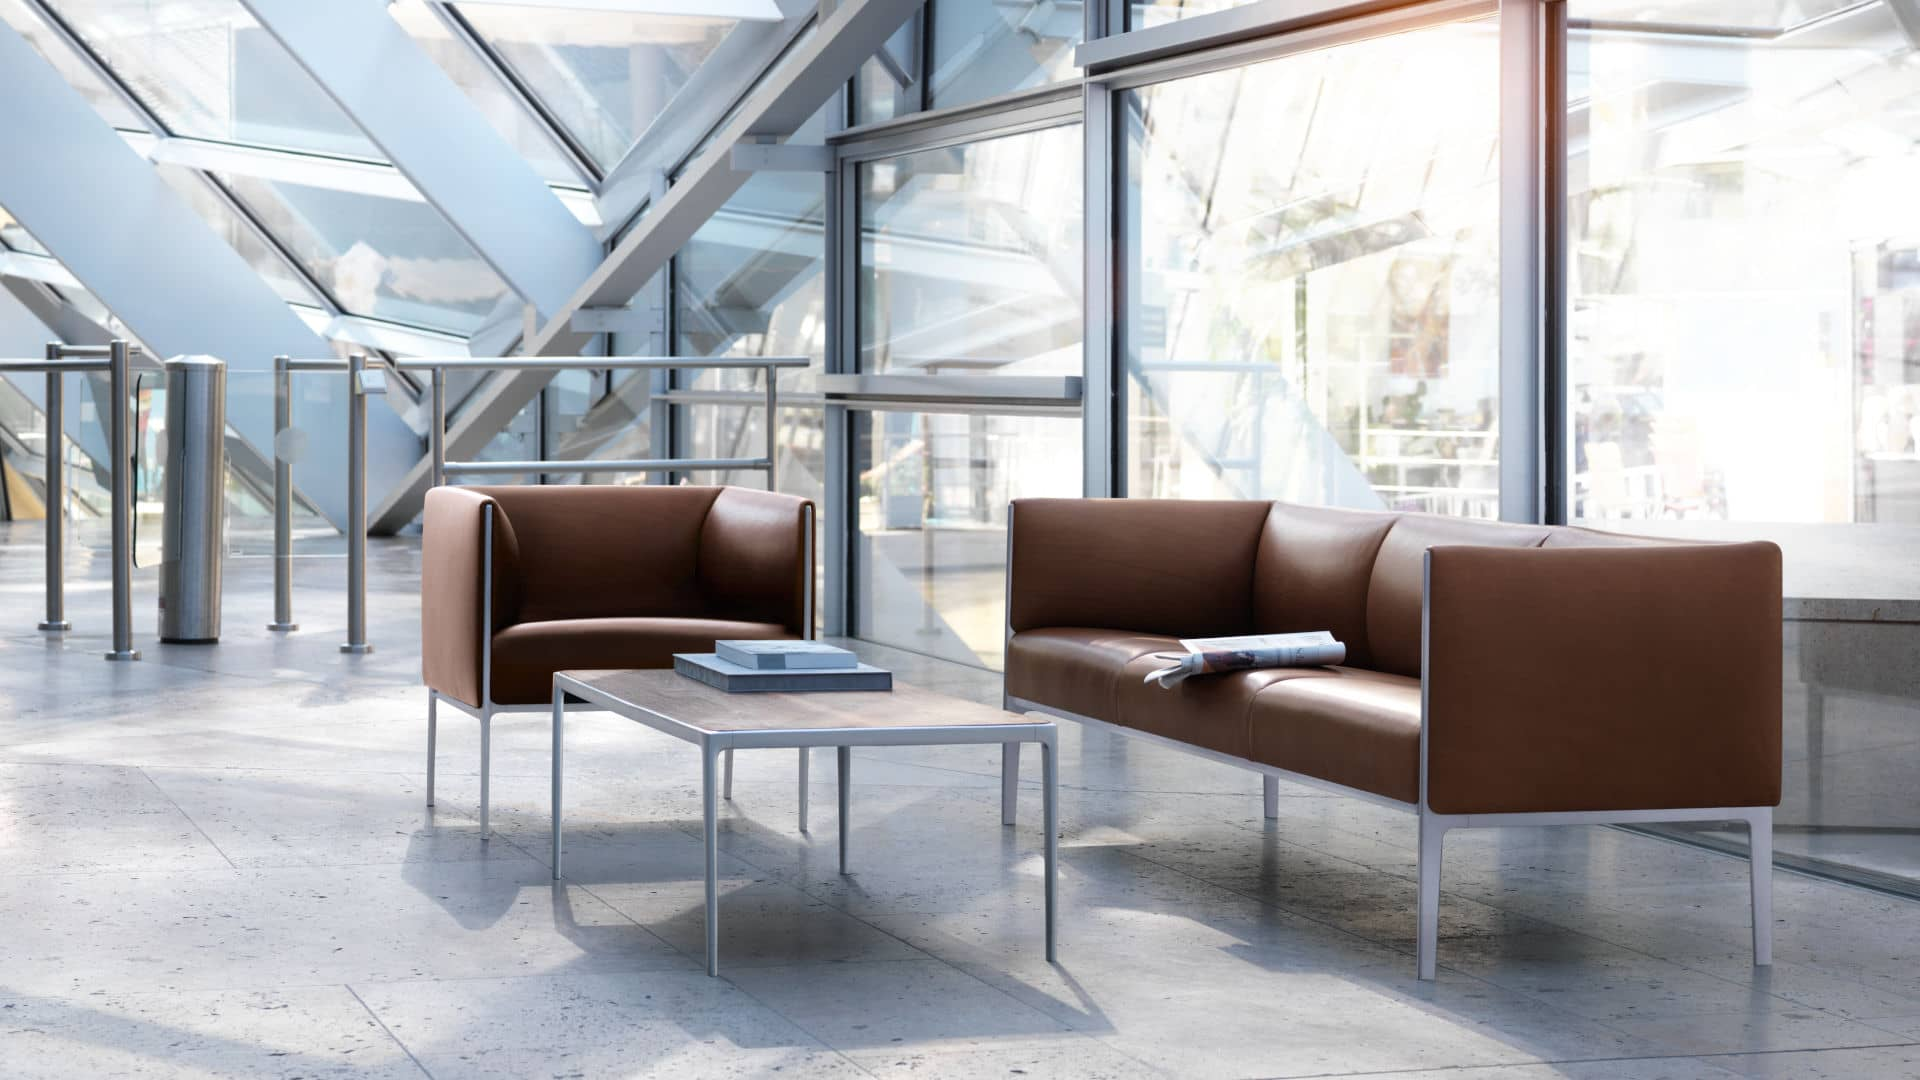 asienta upholstered benches with backrests side tables seating